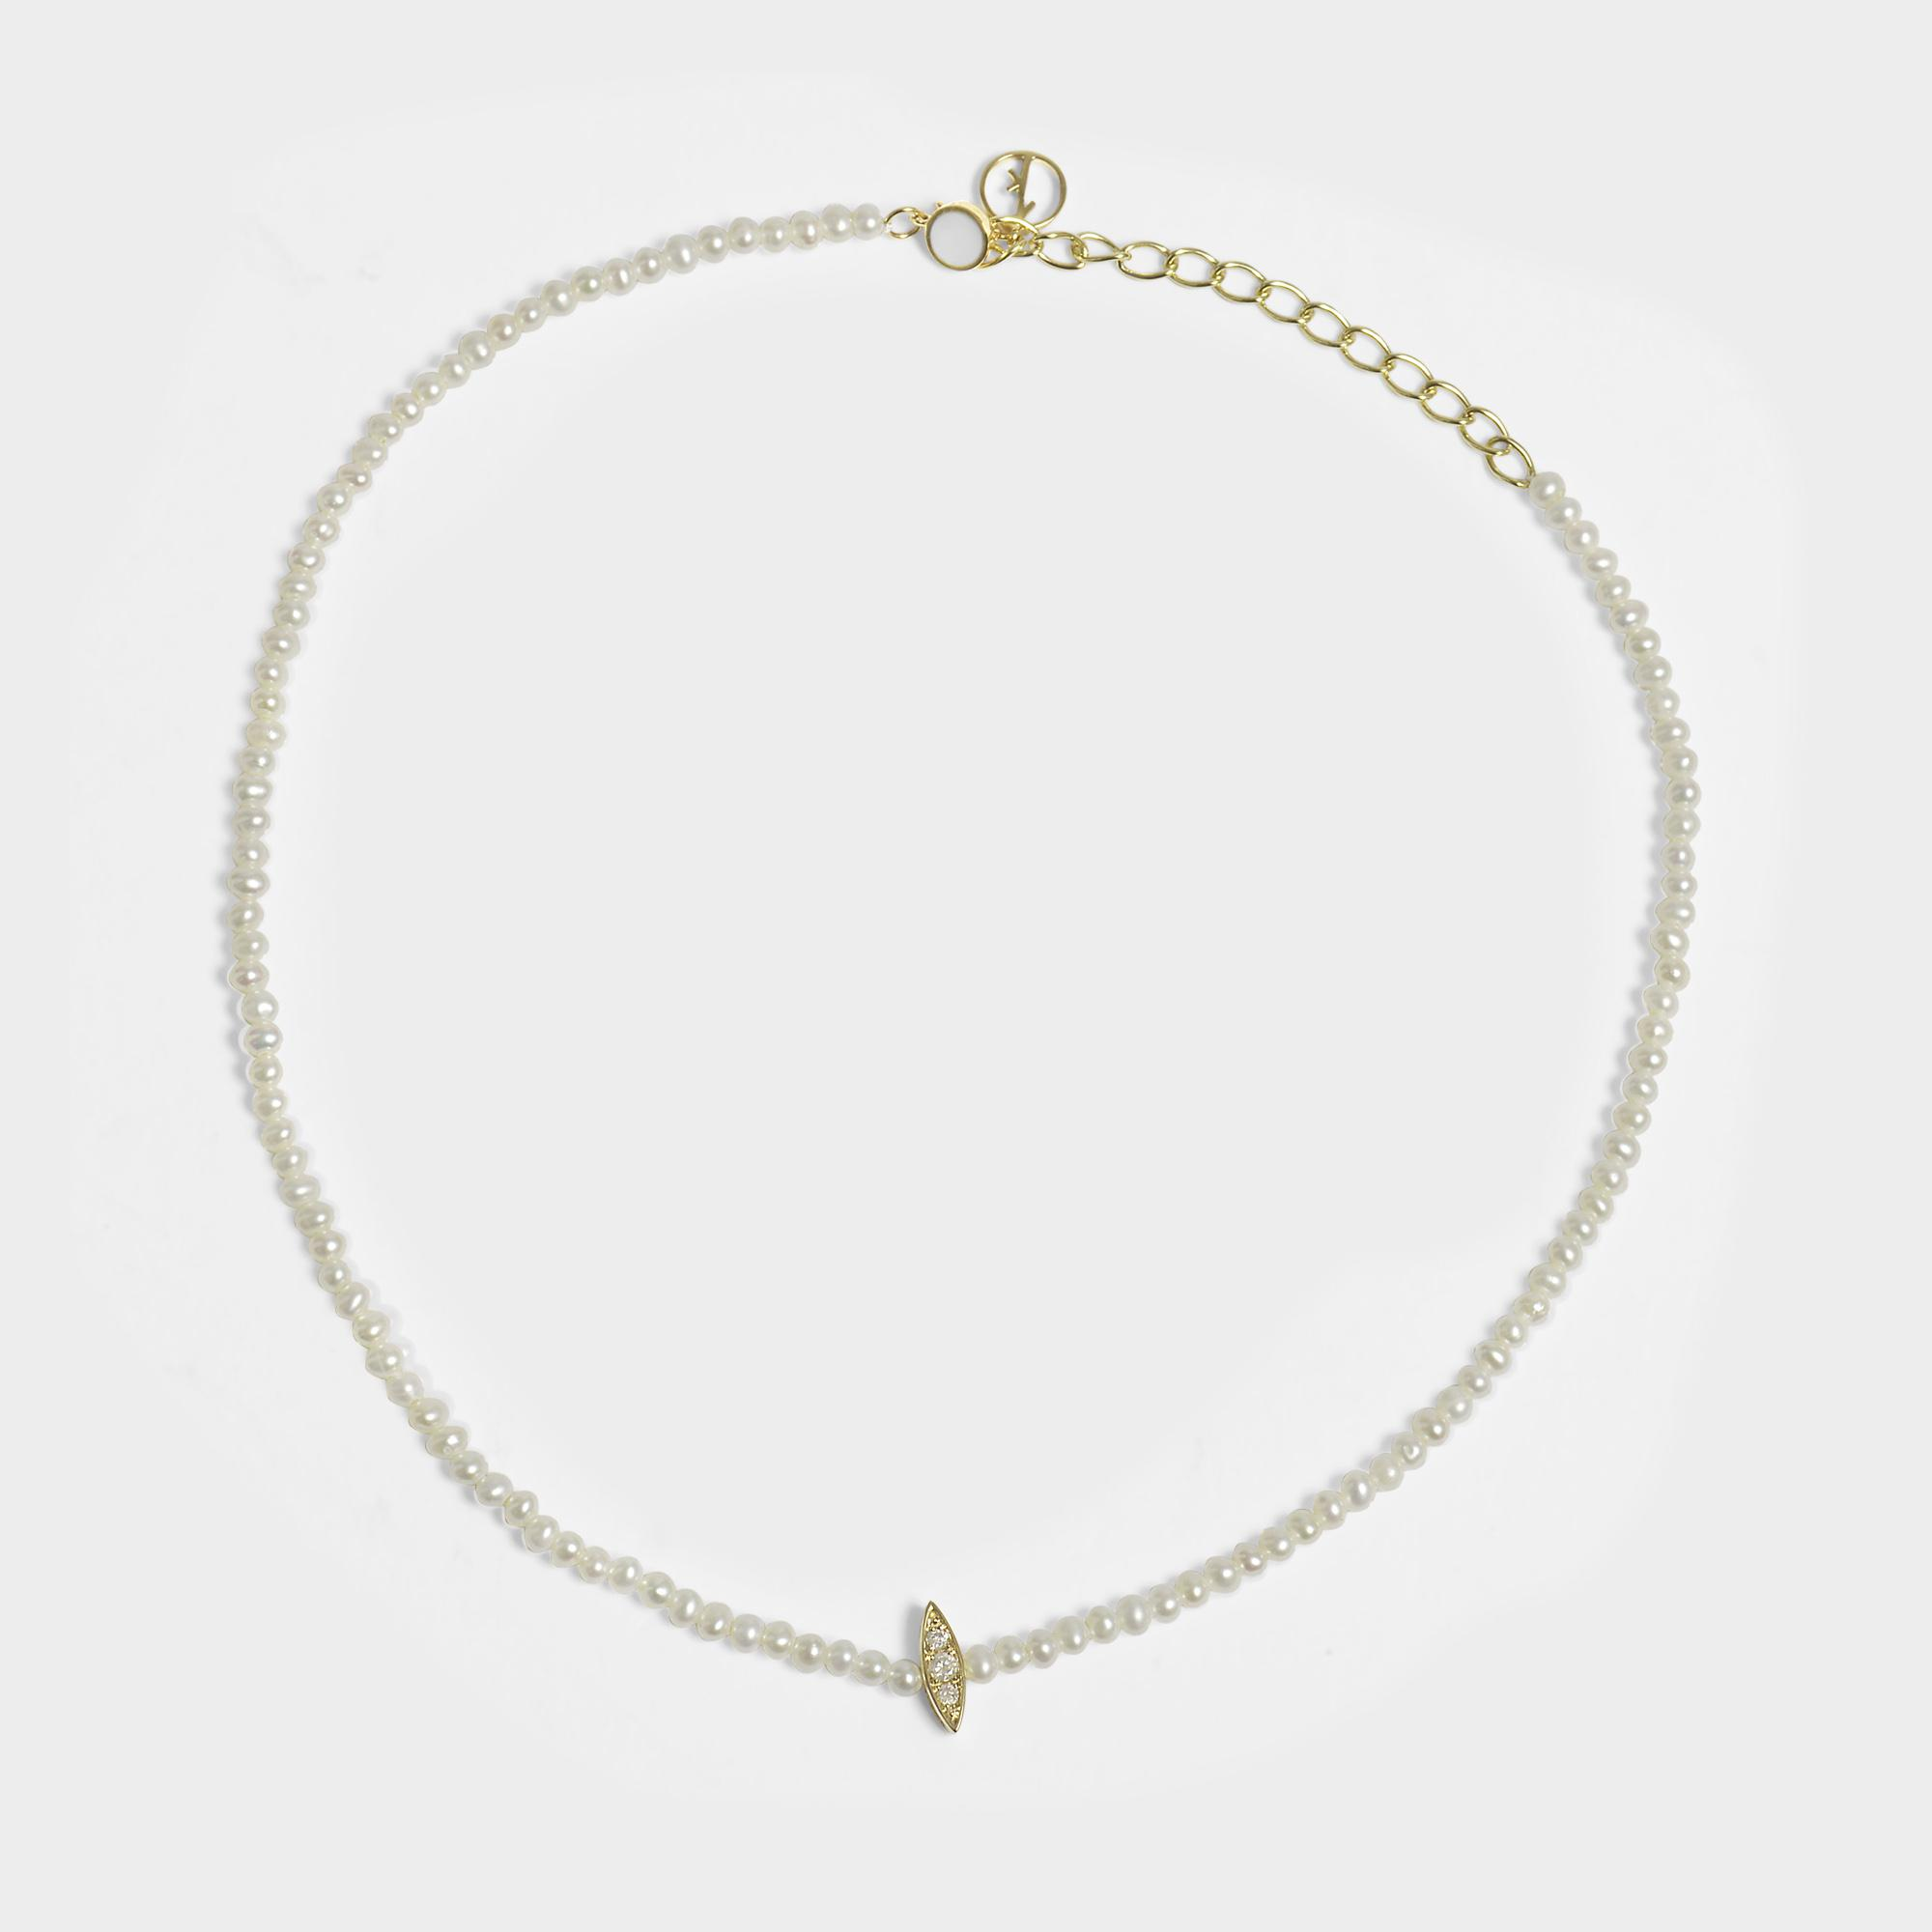 Anissa Kermiche Perle Rare Choker Necklace in 14K Yellow Gold and Diamonds Ofeng